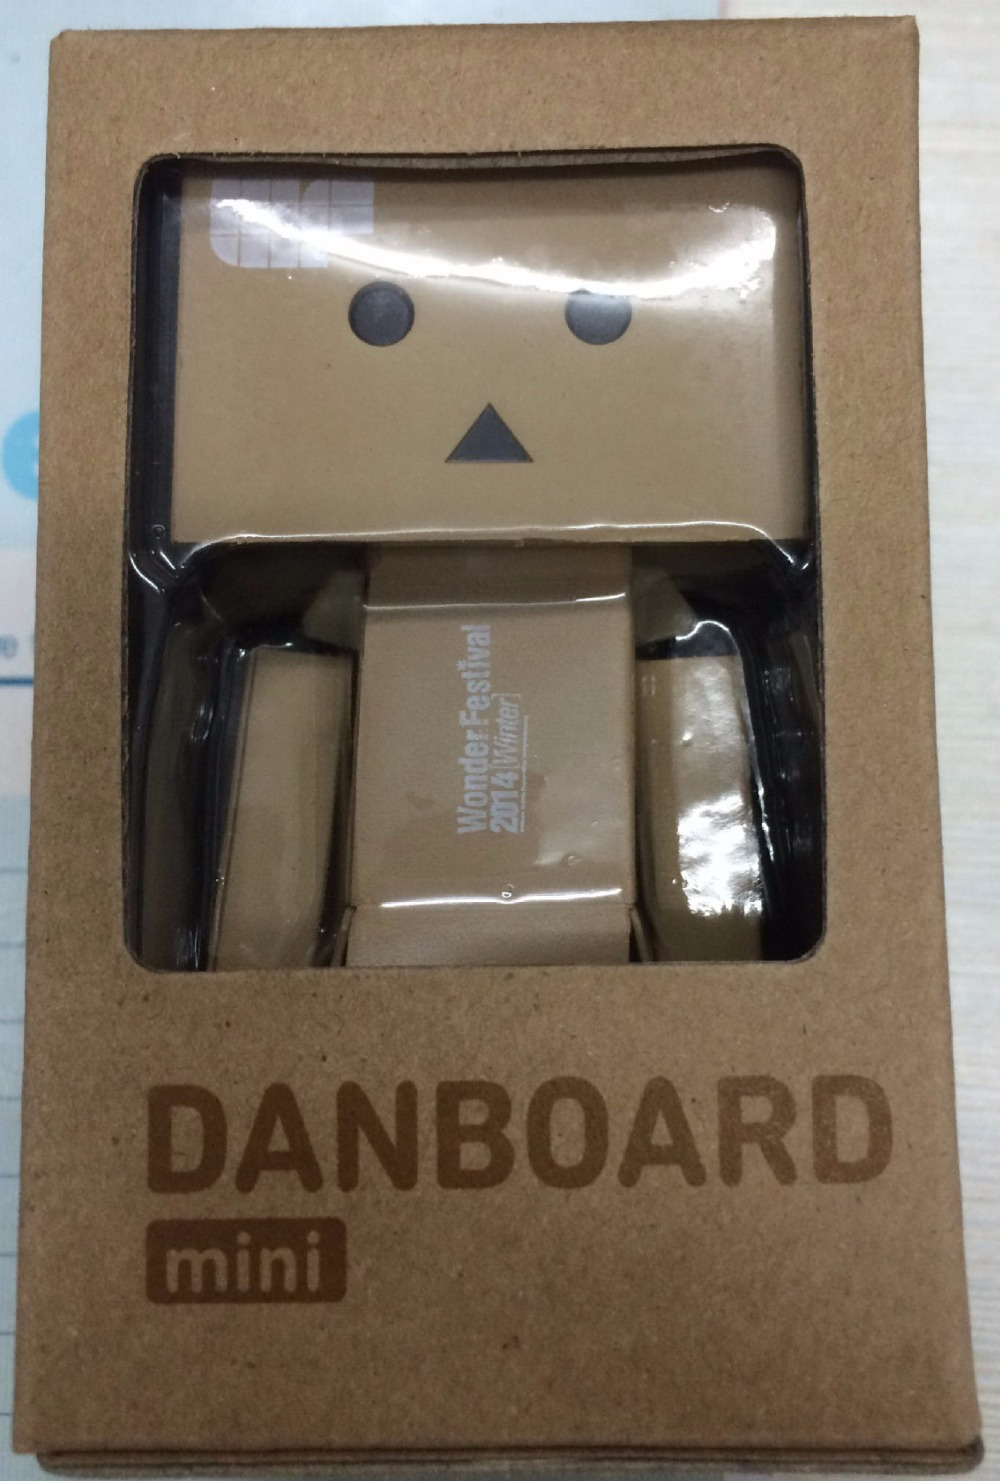 Mini Danboard danbo with Shining function 9.5*6*6 cm 1 pcs/set Boxed PVC Action Figure Toy limit version